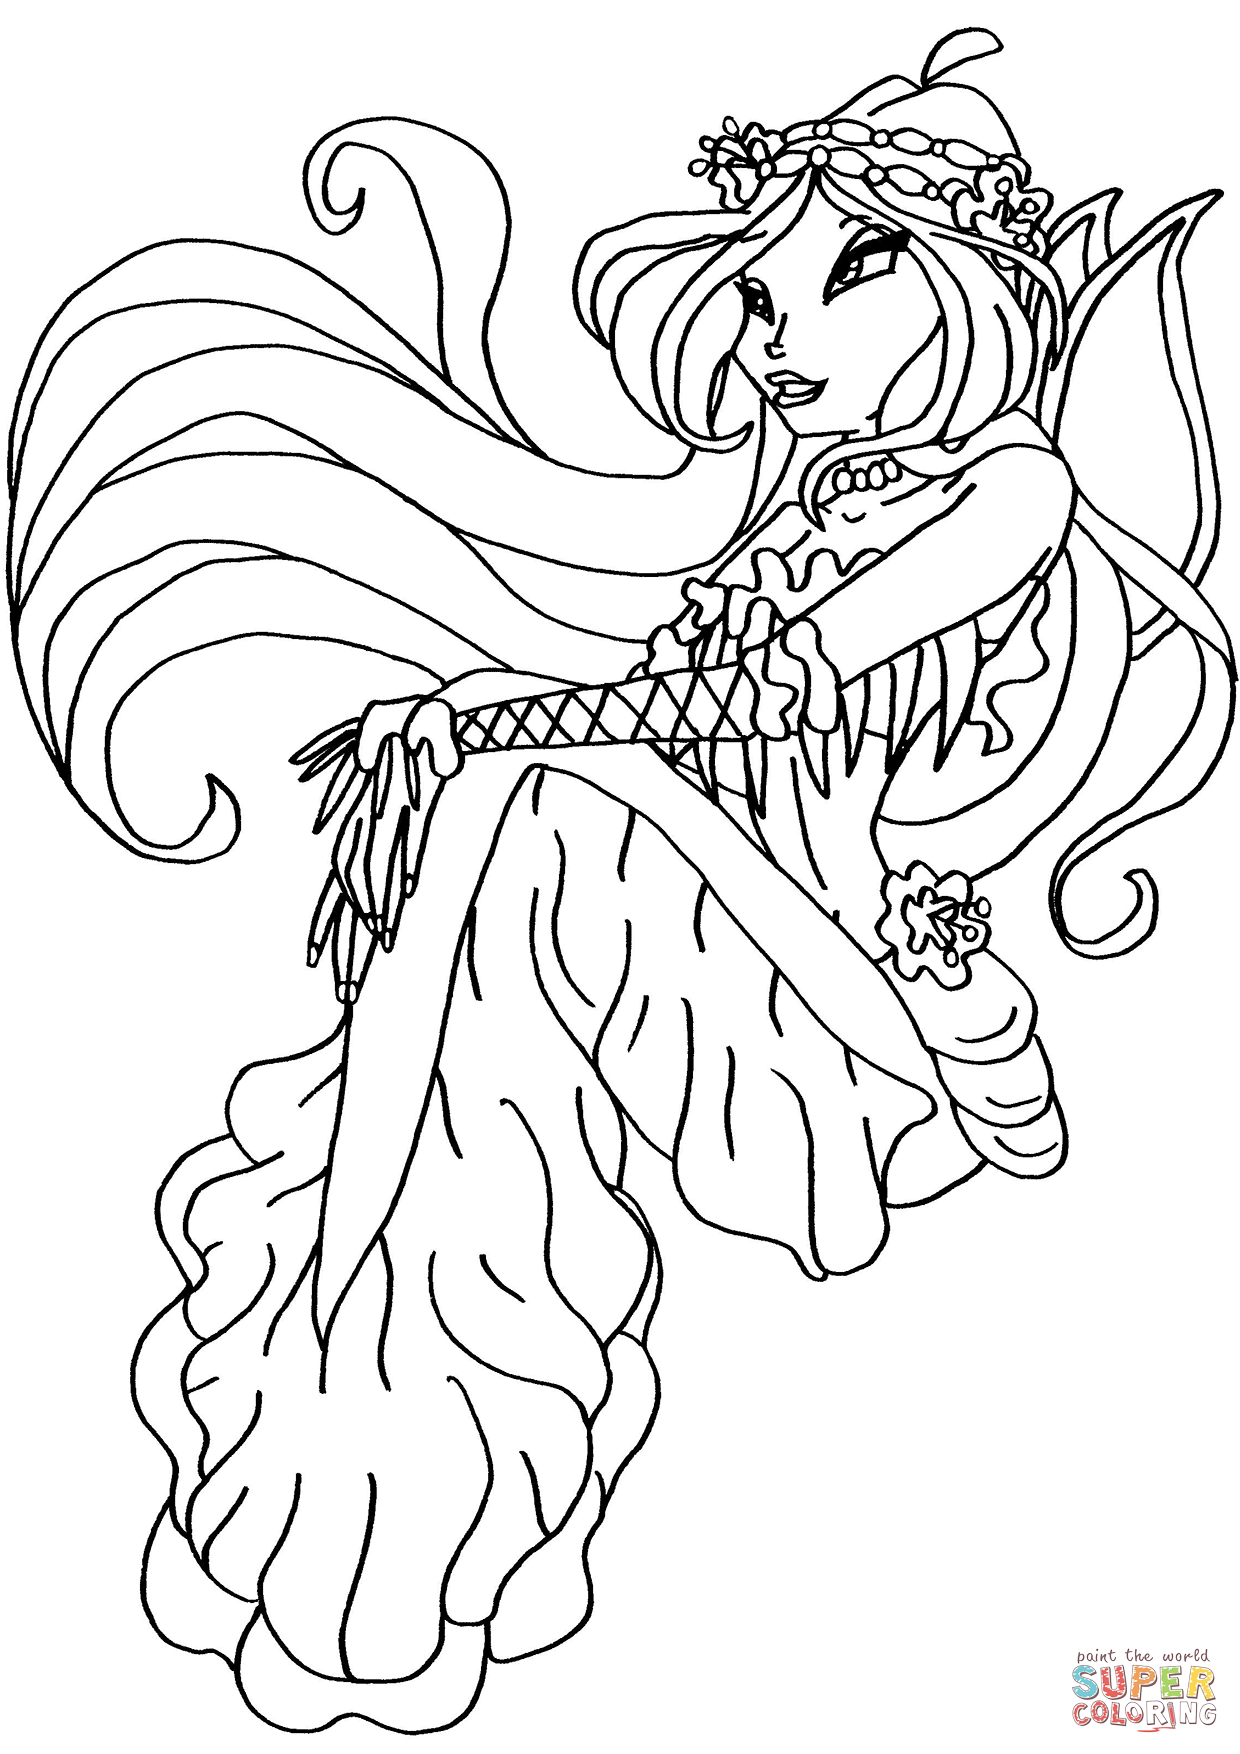 Winx Club Mermaid Flora Coloring Page Free Printable Coloring Pages